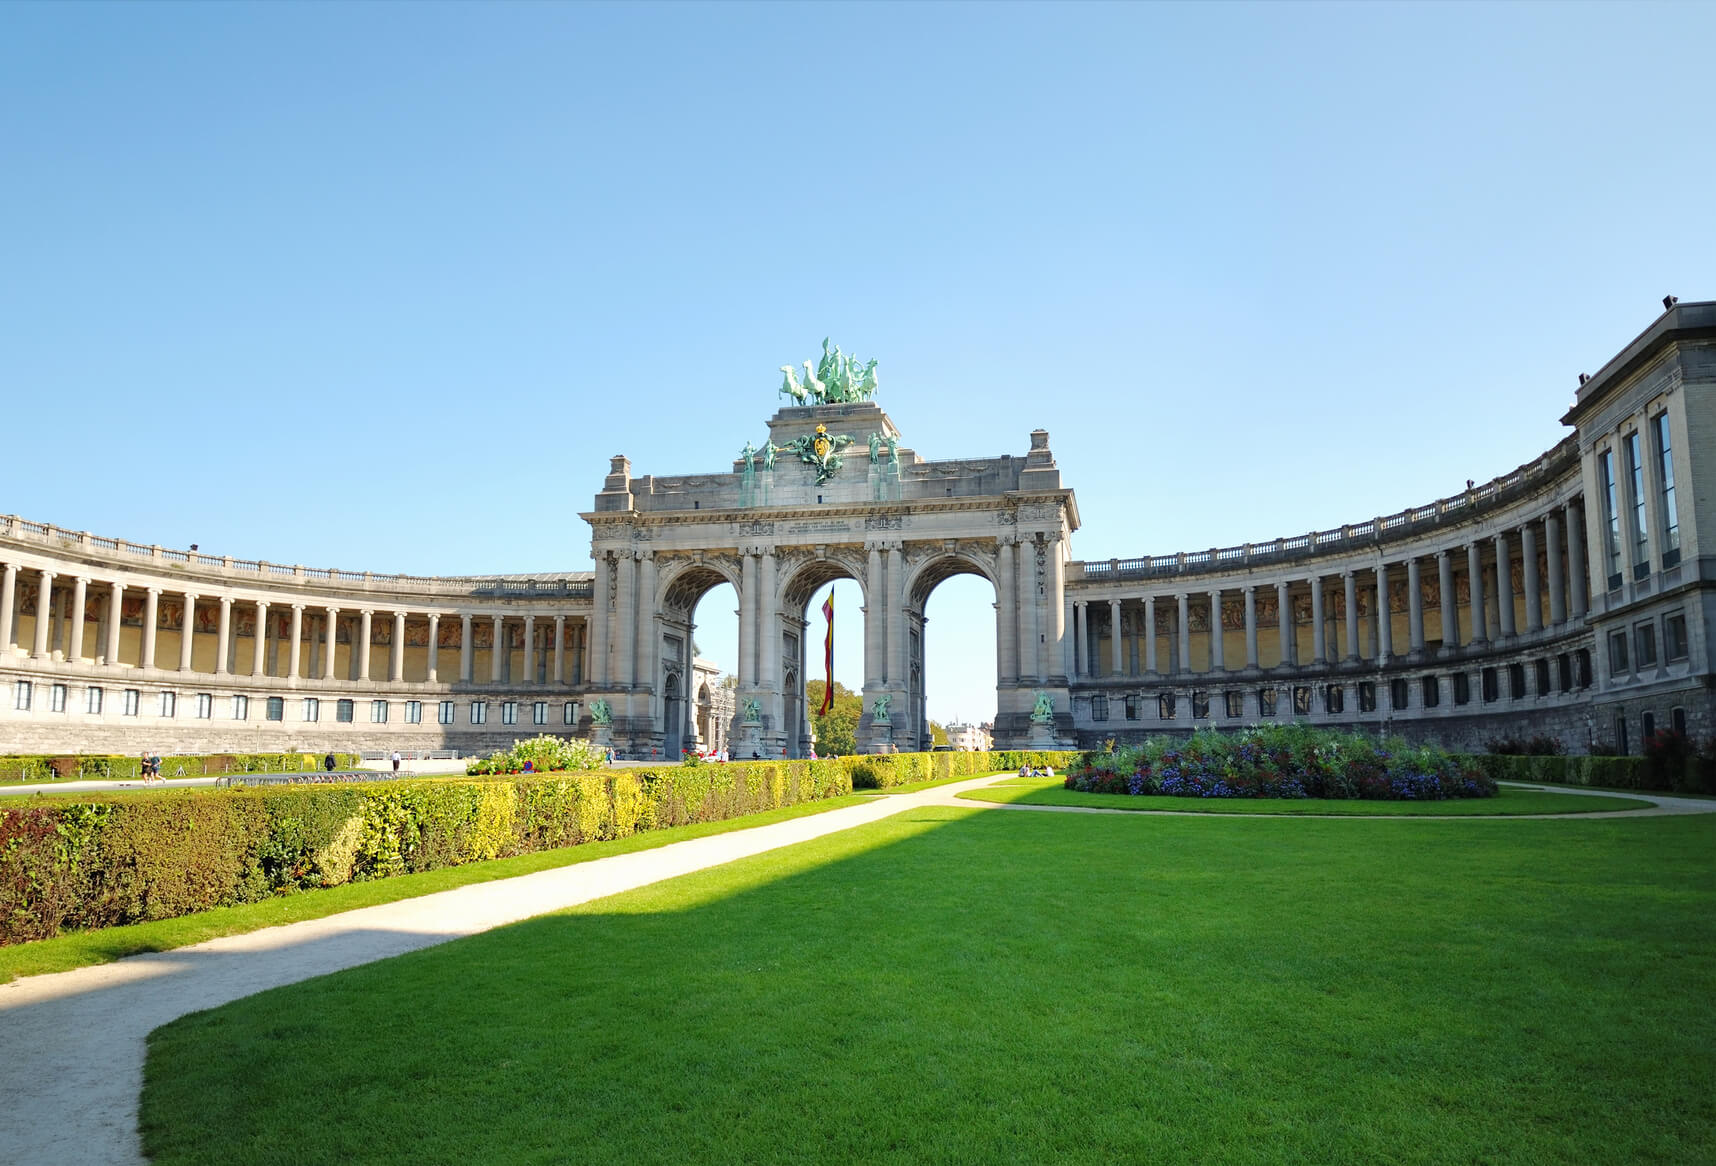 Toronto, Canada to Brussels, Belgium for only $580 CAD roundtrip